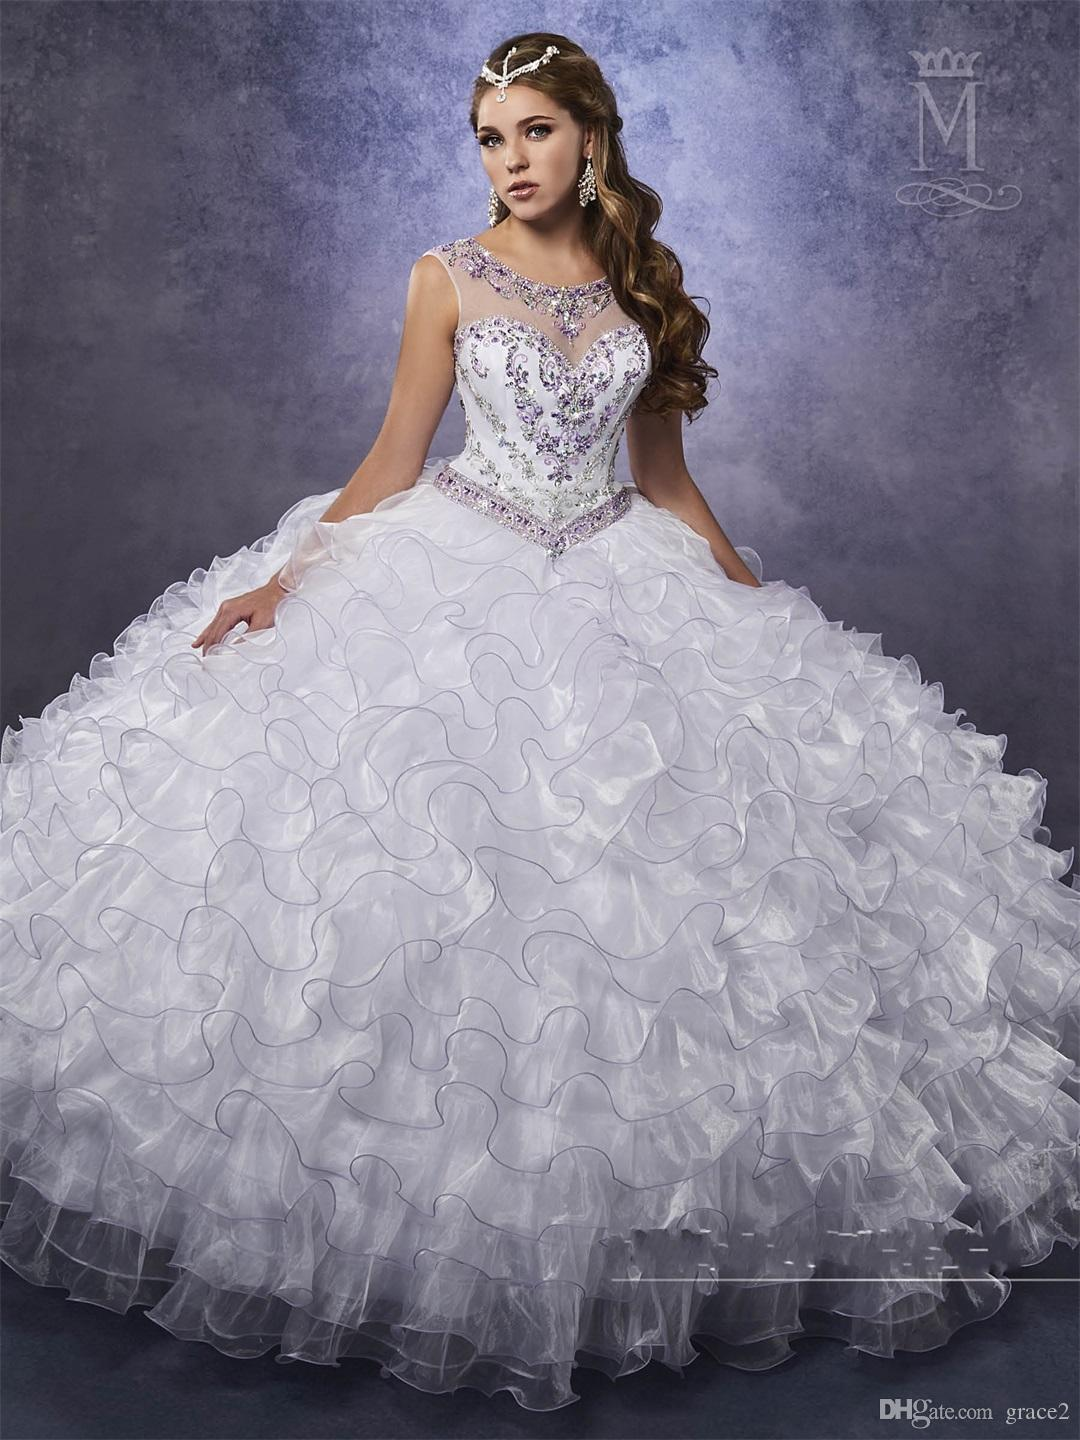 Ruffles Quinceanera Dresses 2017 Mary S Princess With Illusion Neck And  Beaded Basque Waistline Two Tones Sweet 15 Dress Custom Made Inexpensive  Quinceanera ... 89d4e7c98889